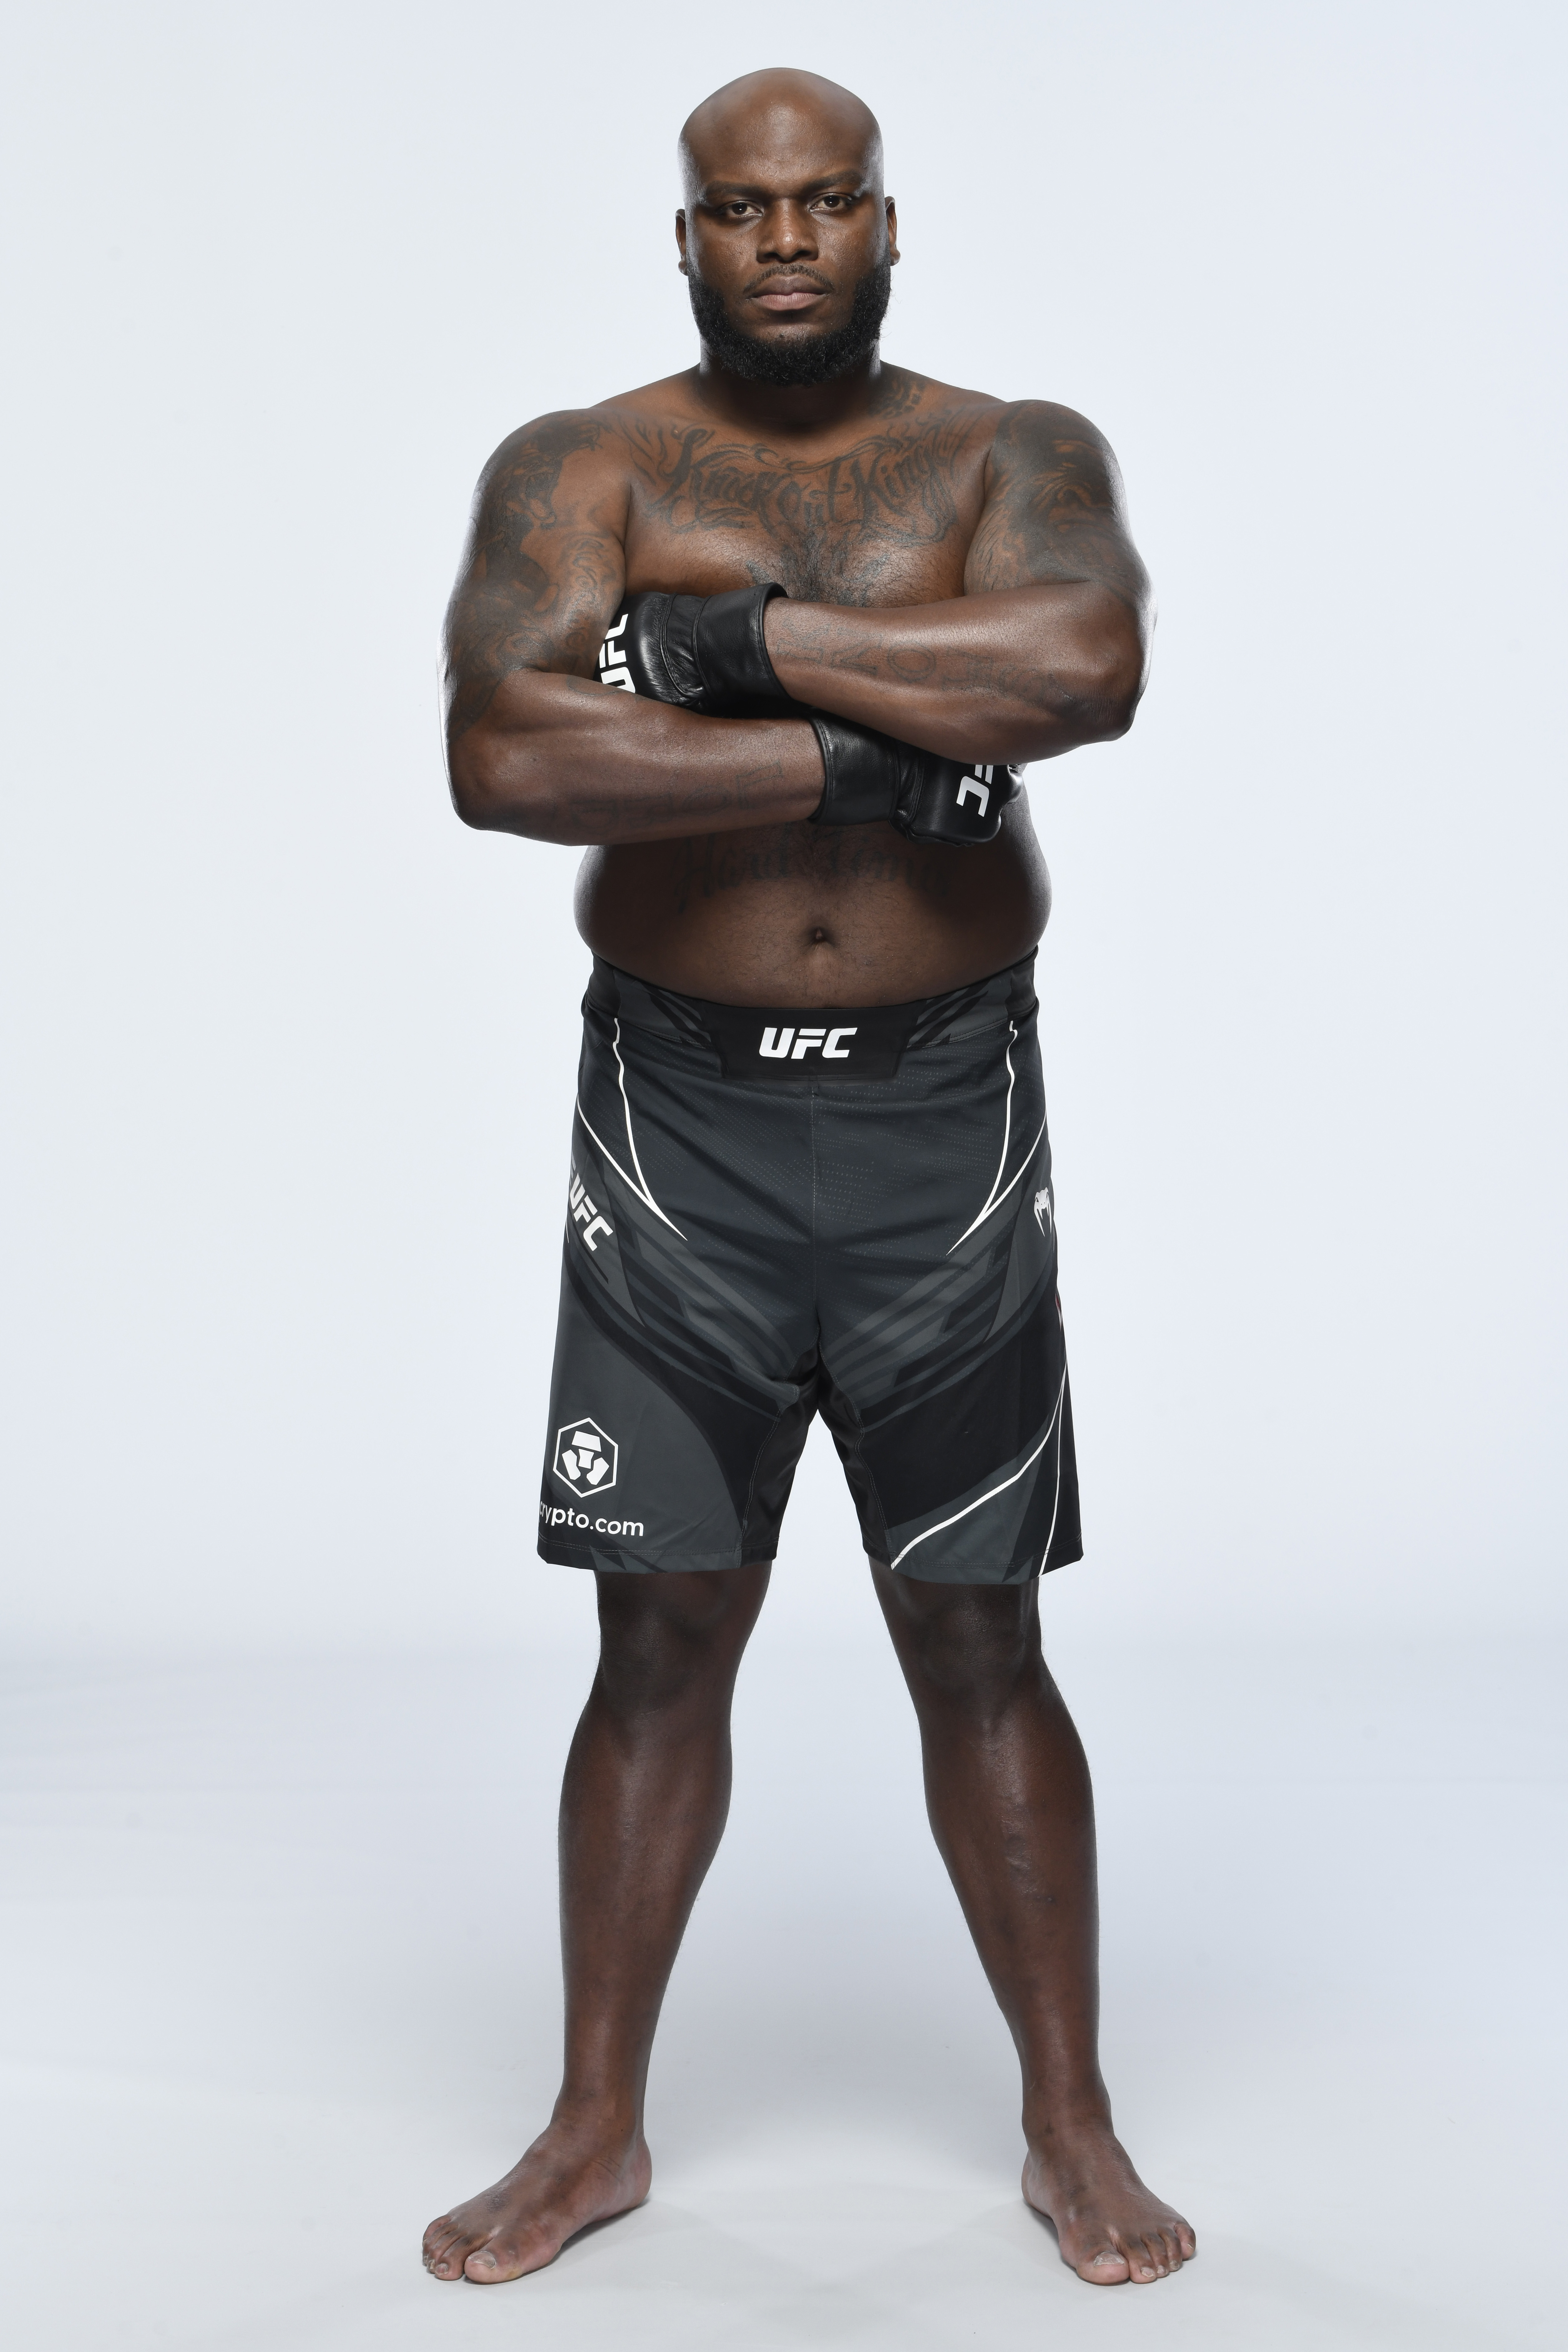 Derrick Lewis poses for a portrait during a UFC photo session on August 4, 2021 in Houston, Texas.